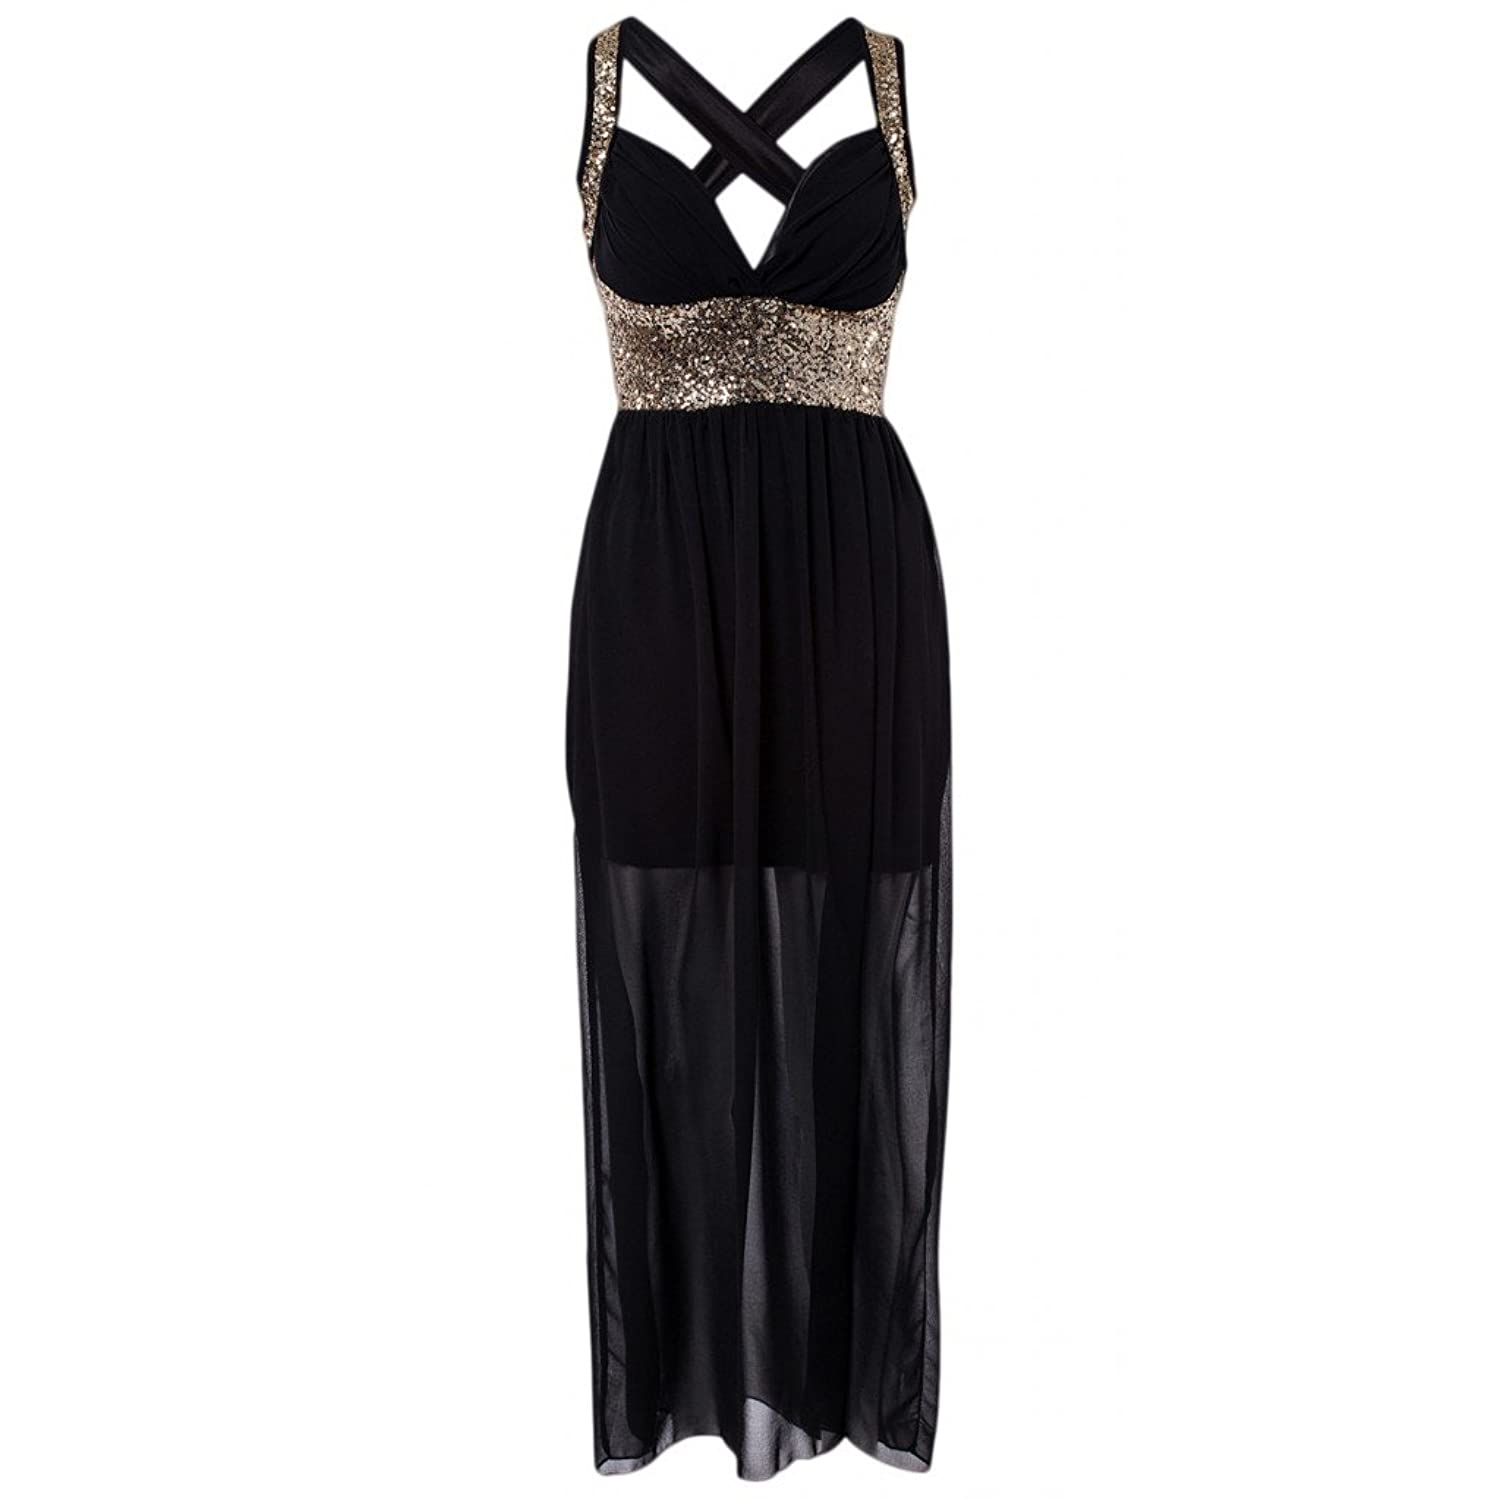 Waooh - Strapless Dress With Sequin Curuid